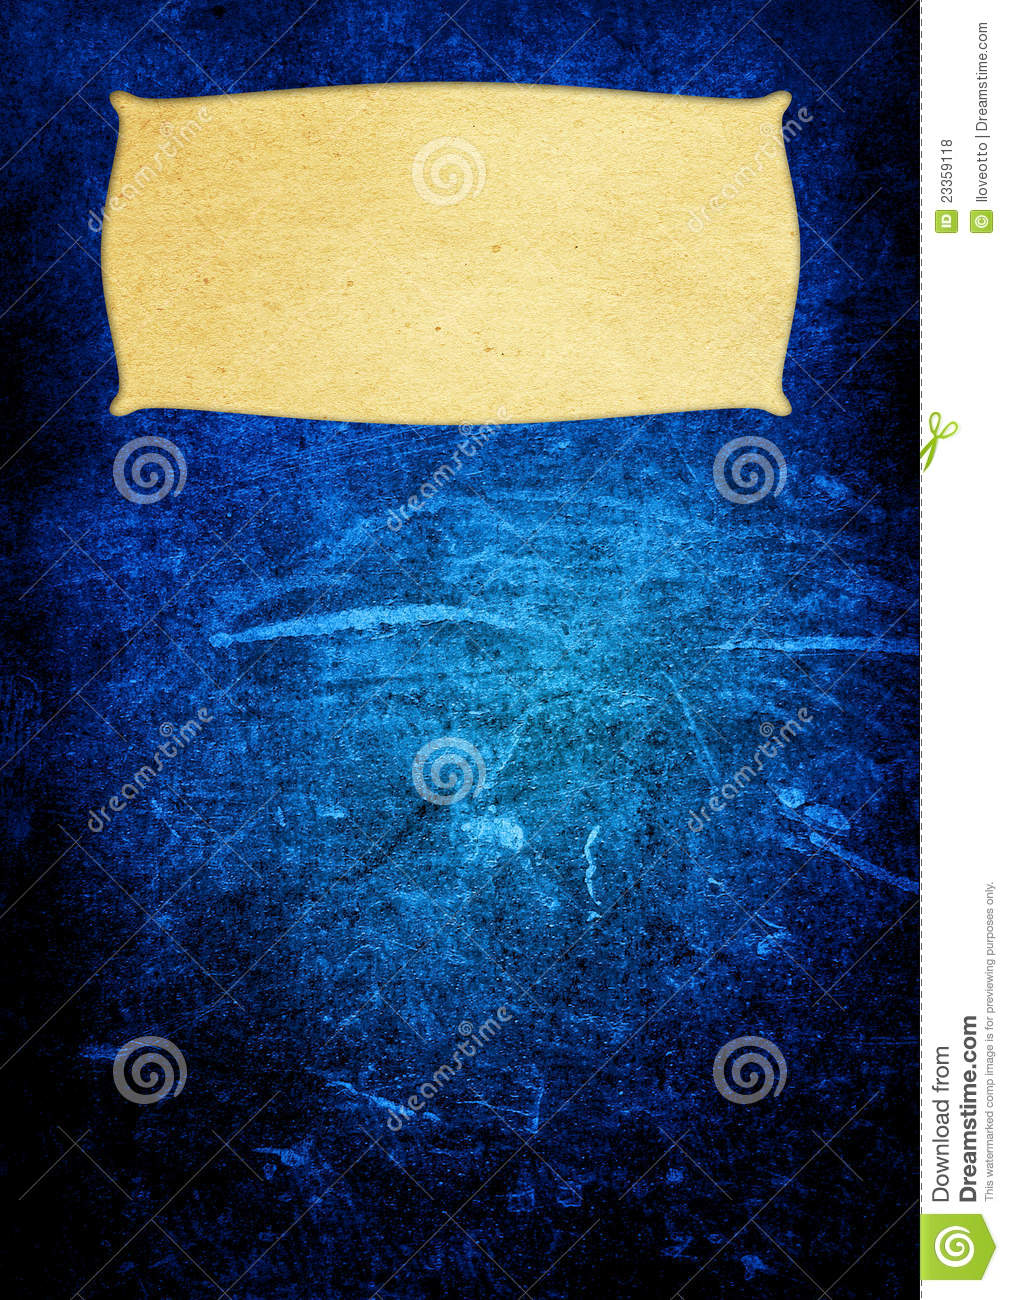 Creative Backgrounds Book Cover Pictures ~ Backgrounds book cover royalty free stock photos image